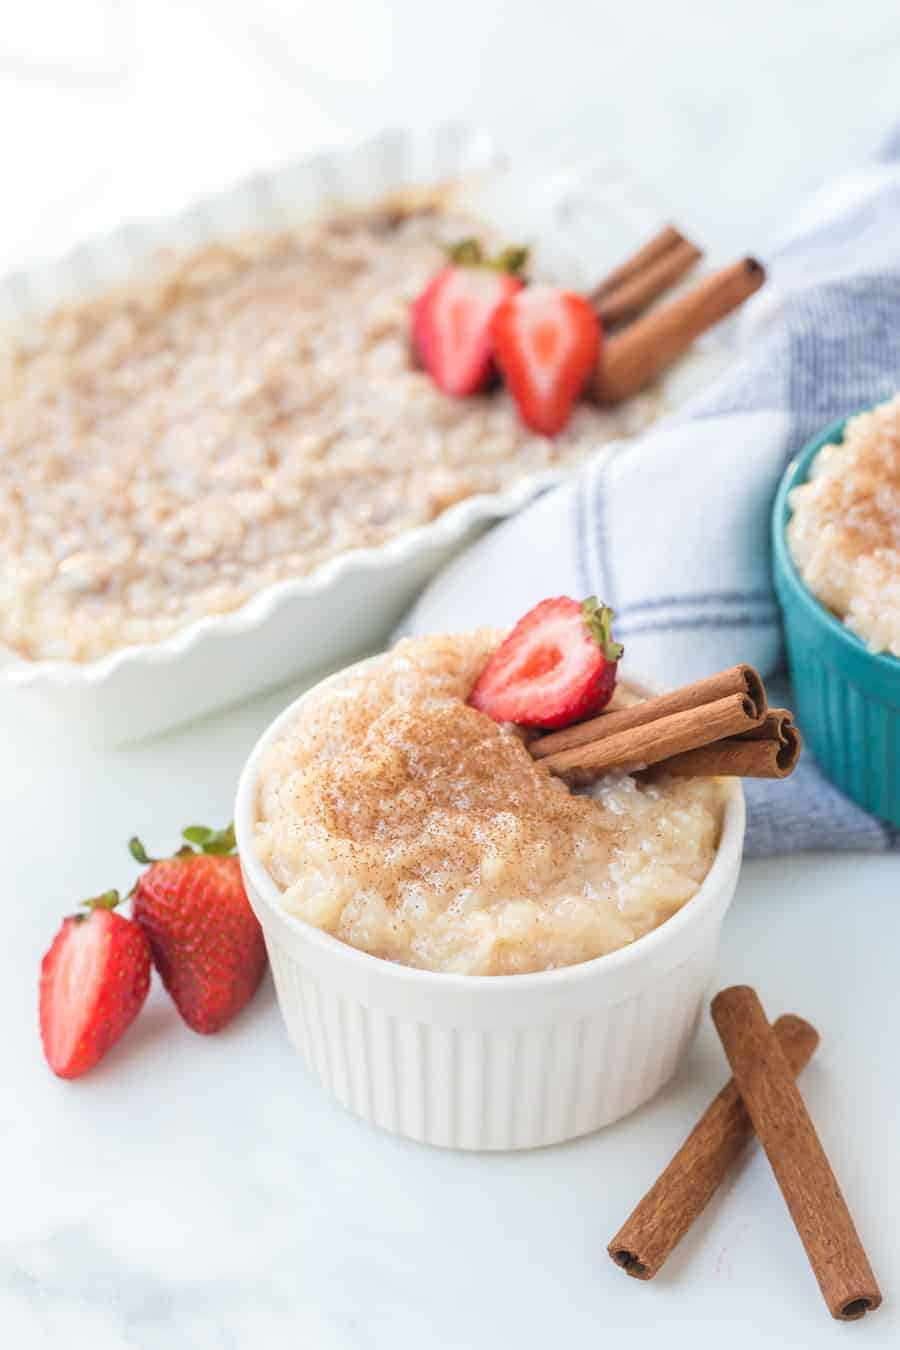 Rice pudding with strawberries and cinnamon sticks in ramekins